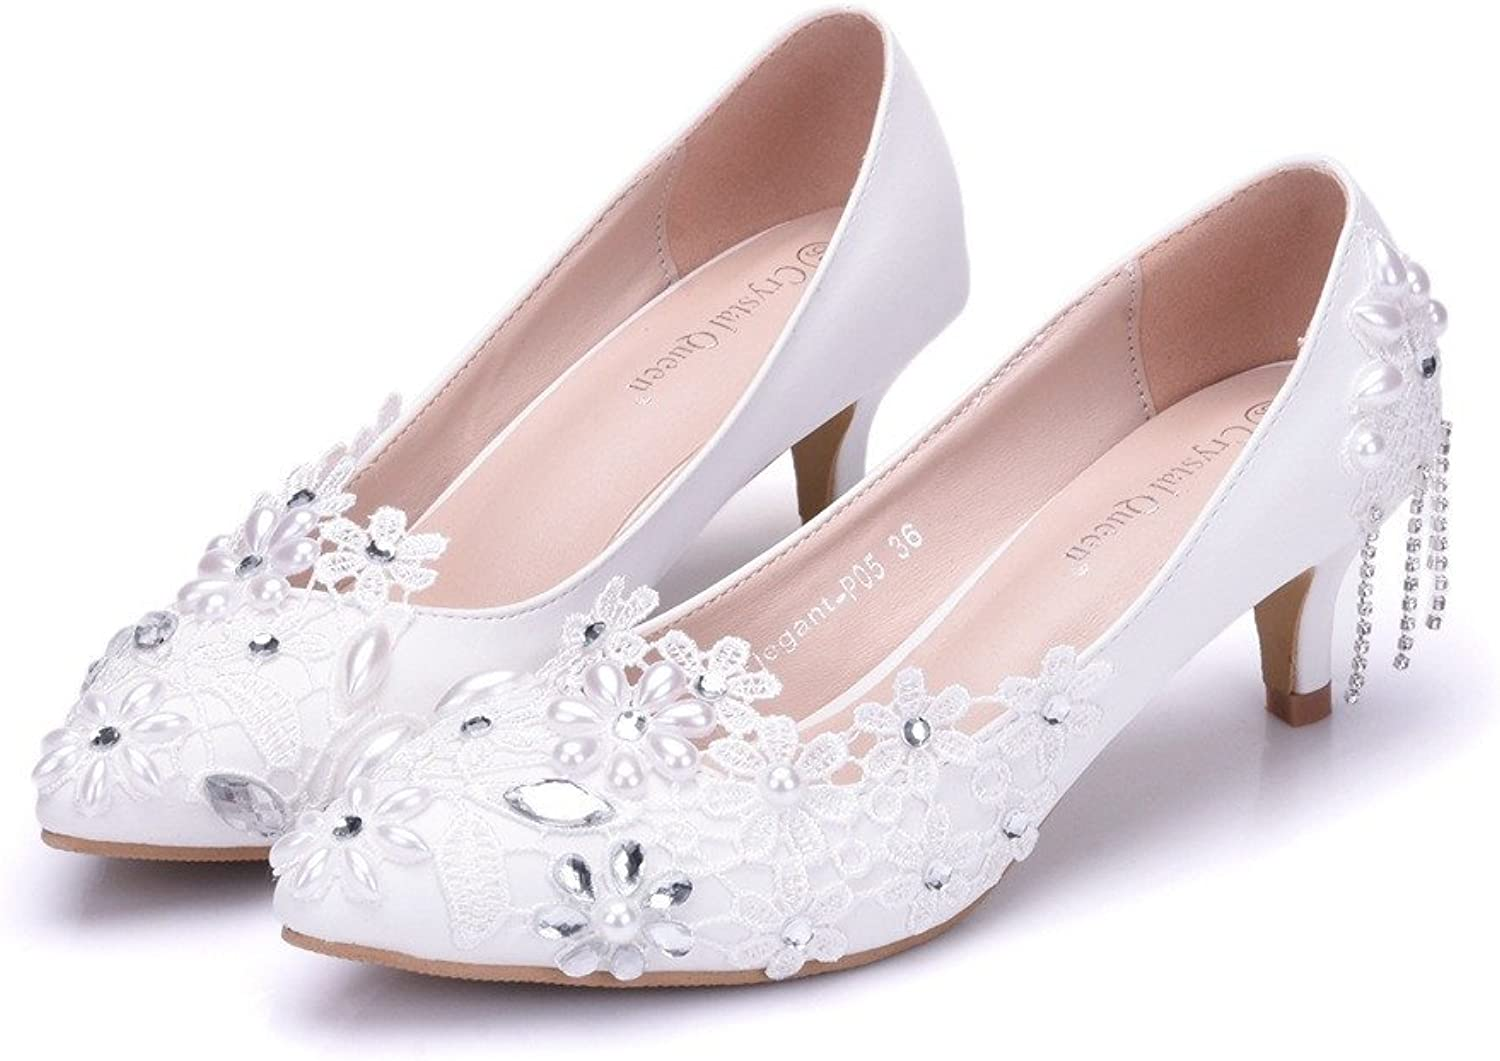 HYP Wedding Women shoes Wedding shoes Women Pumps Closed Toe Wedding Party Court shoes Bridesmaid Bridal shoes Crystal tip Single shoes